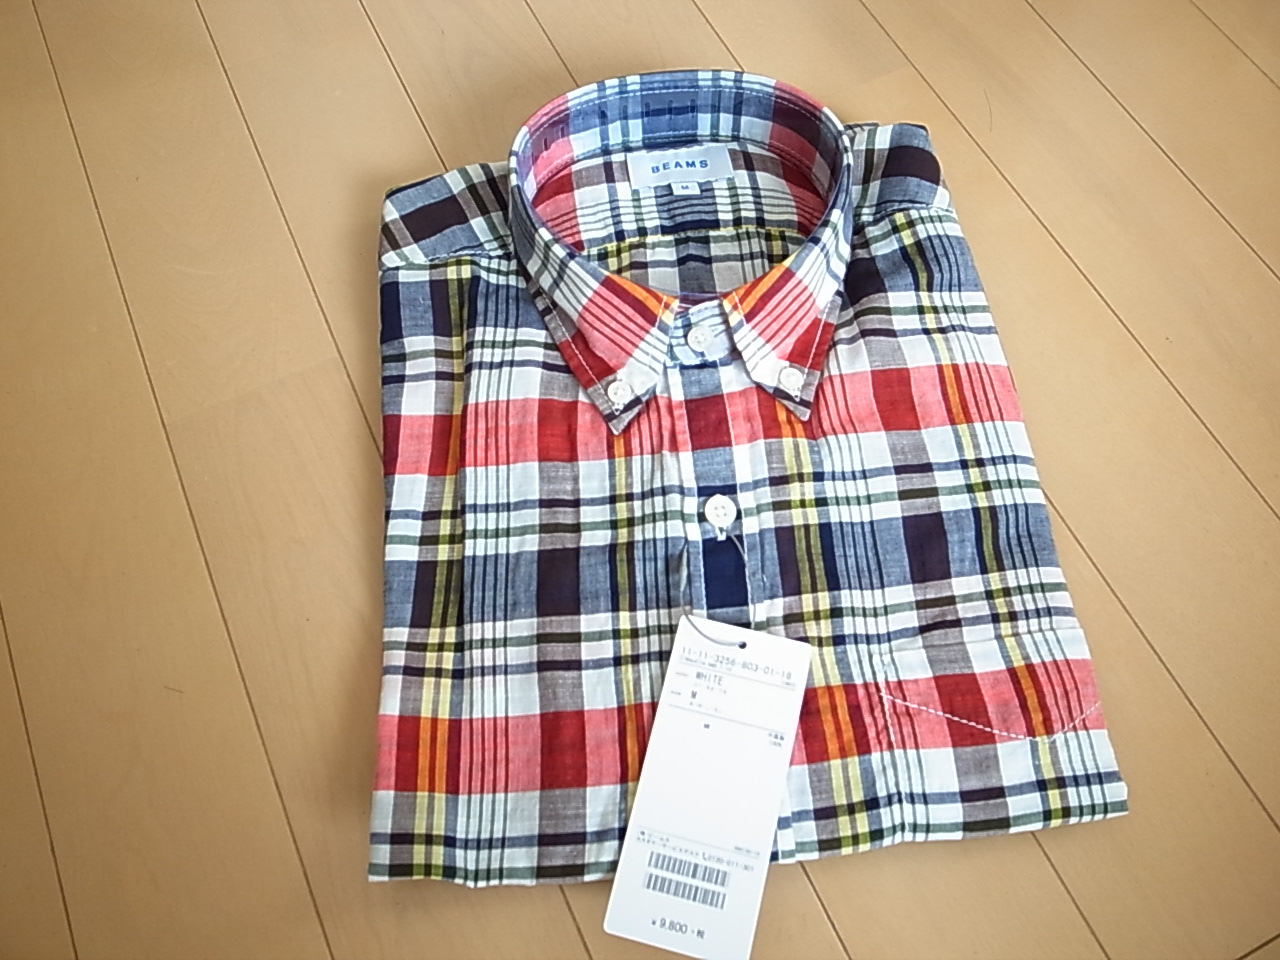 Beams men shirts 1